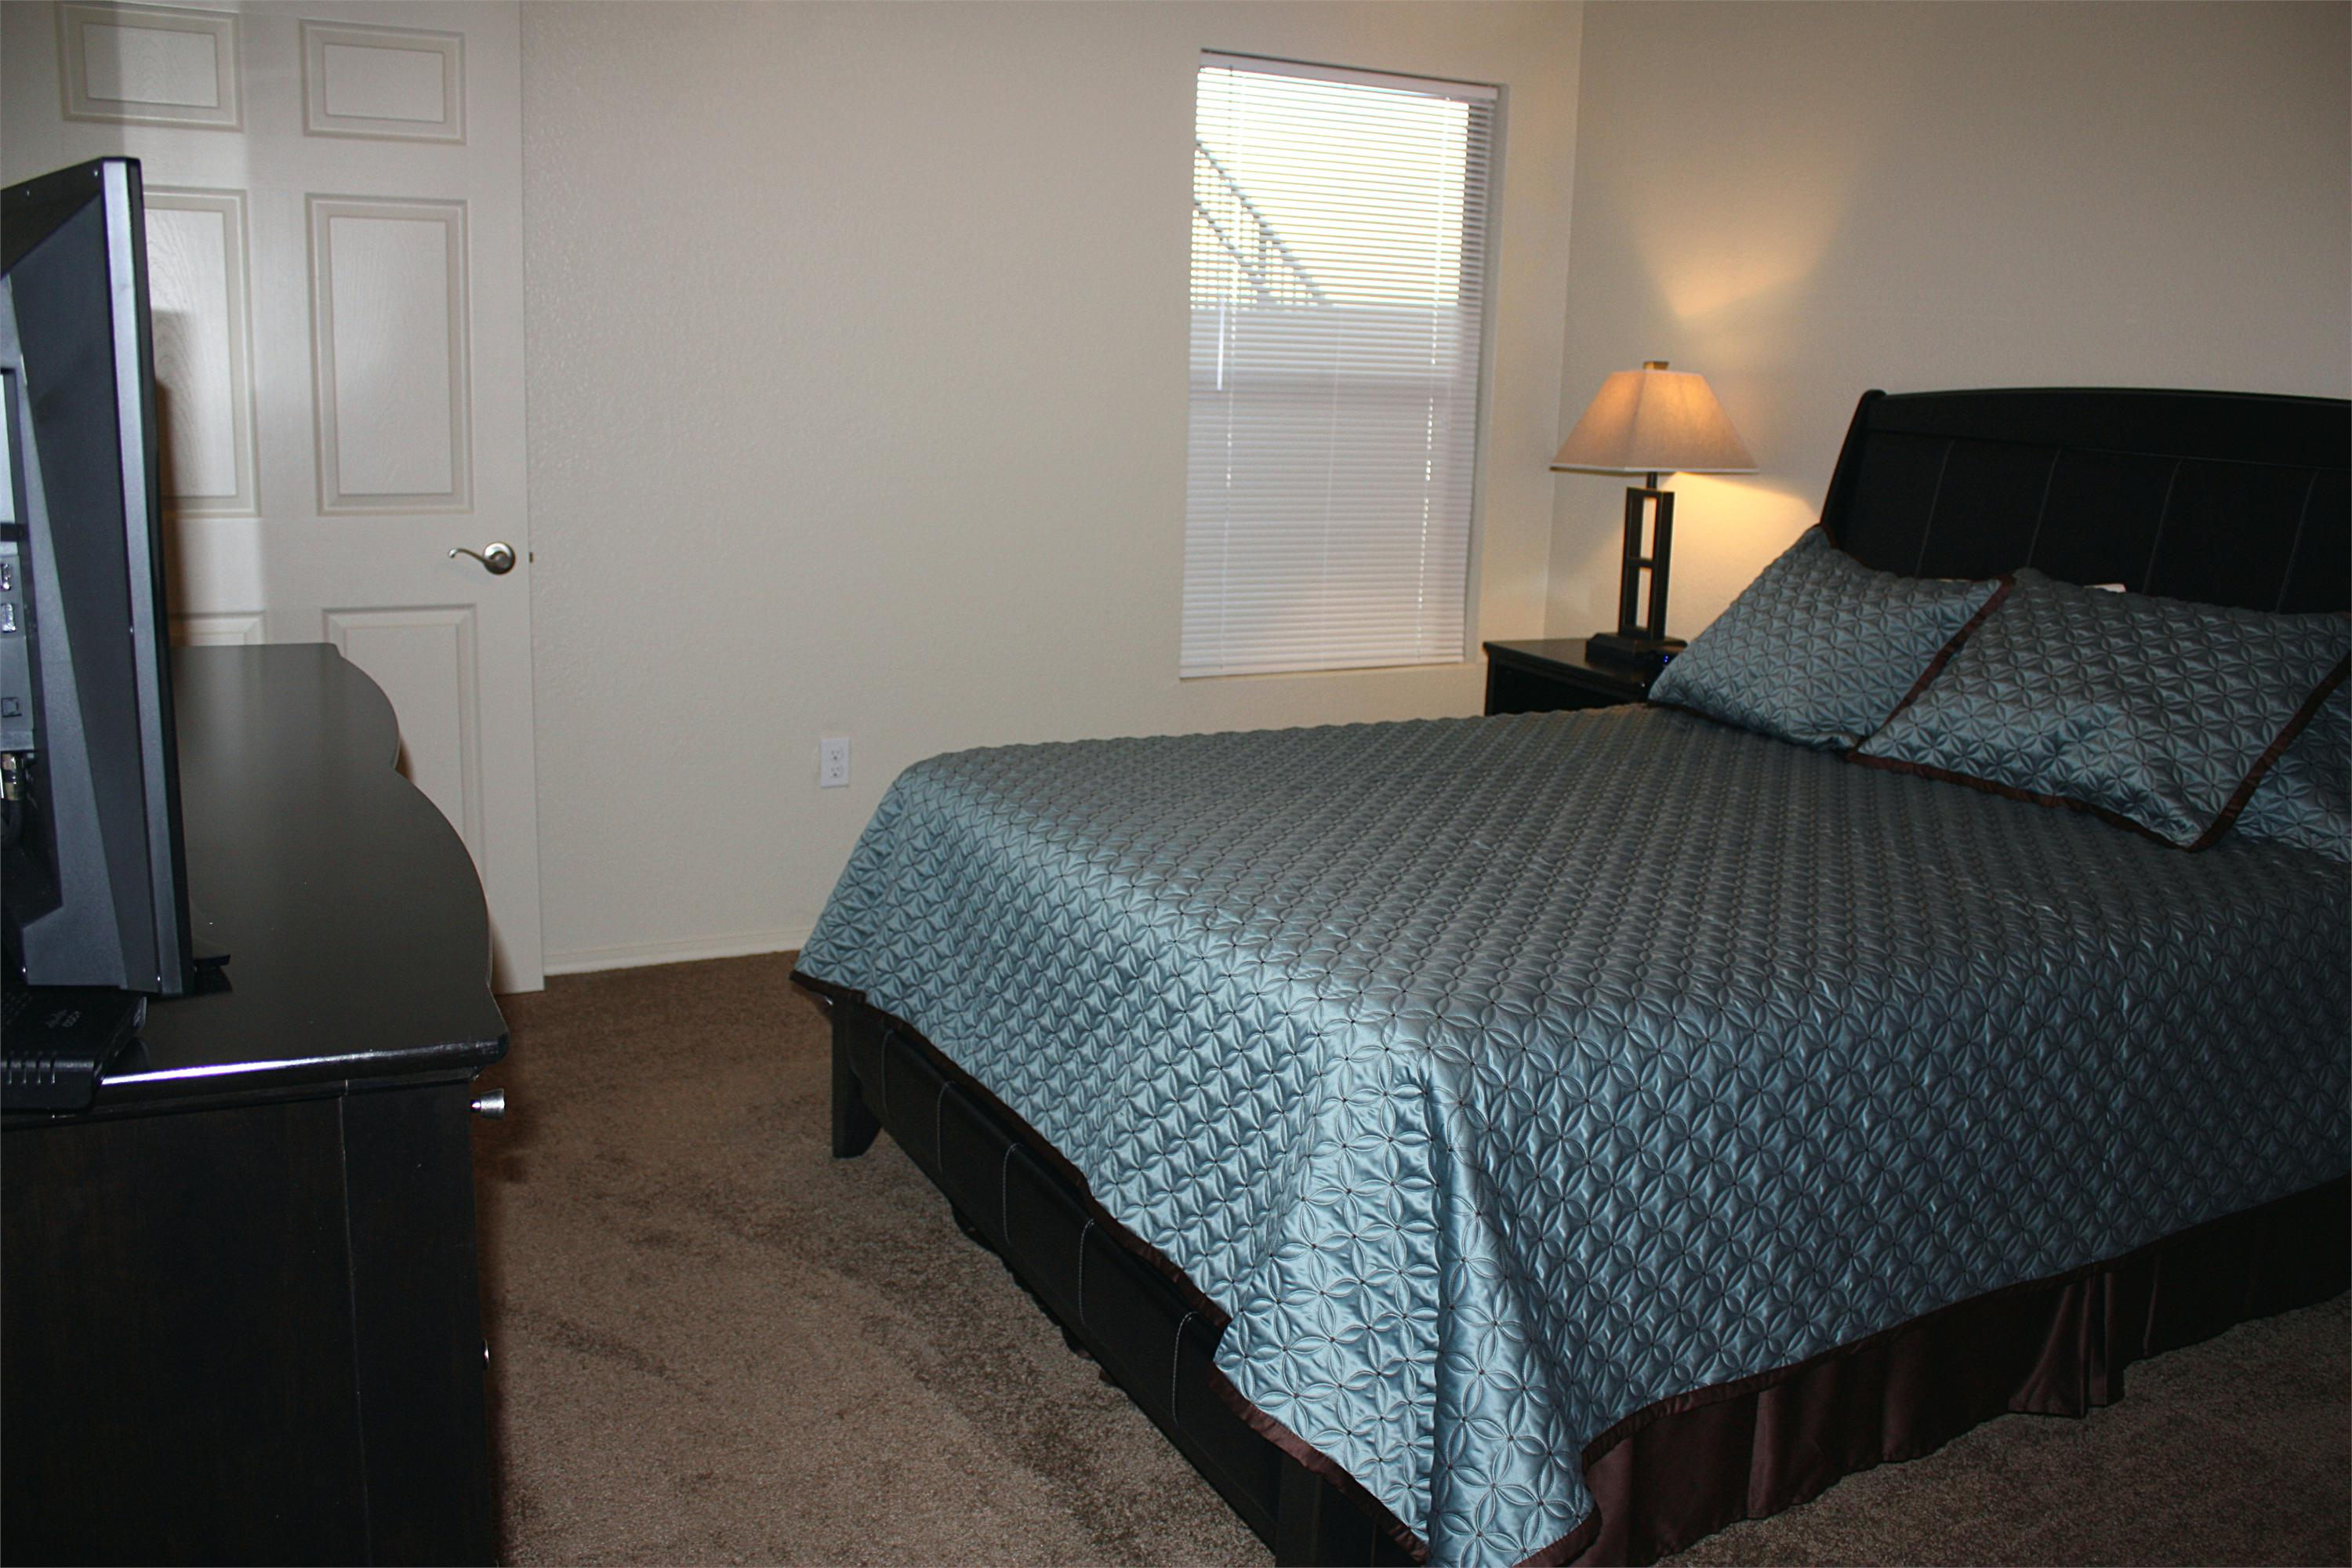 20 Best Apartments In Farmington NM with pictures